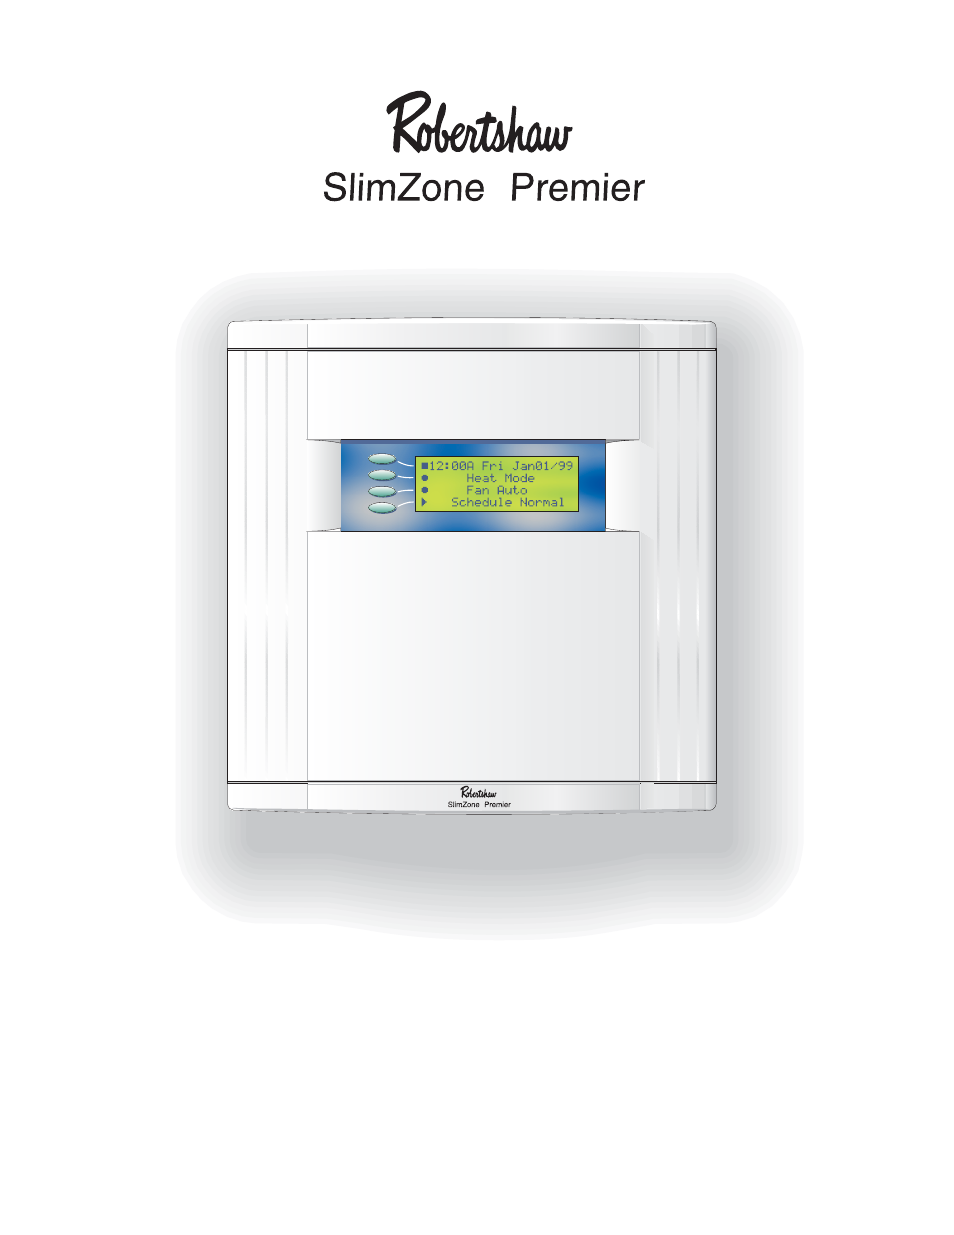 Robertshaw slimzone premier zone control system user manual 35 pages publicscrutiny Choice Image